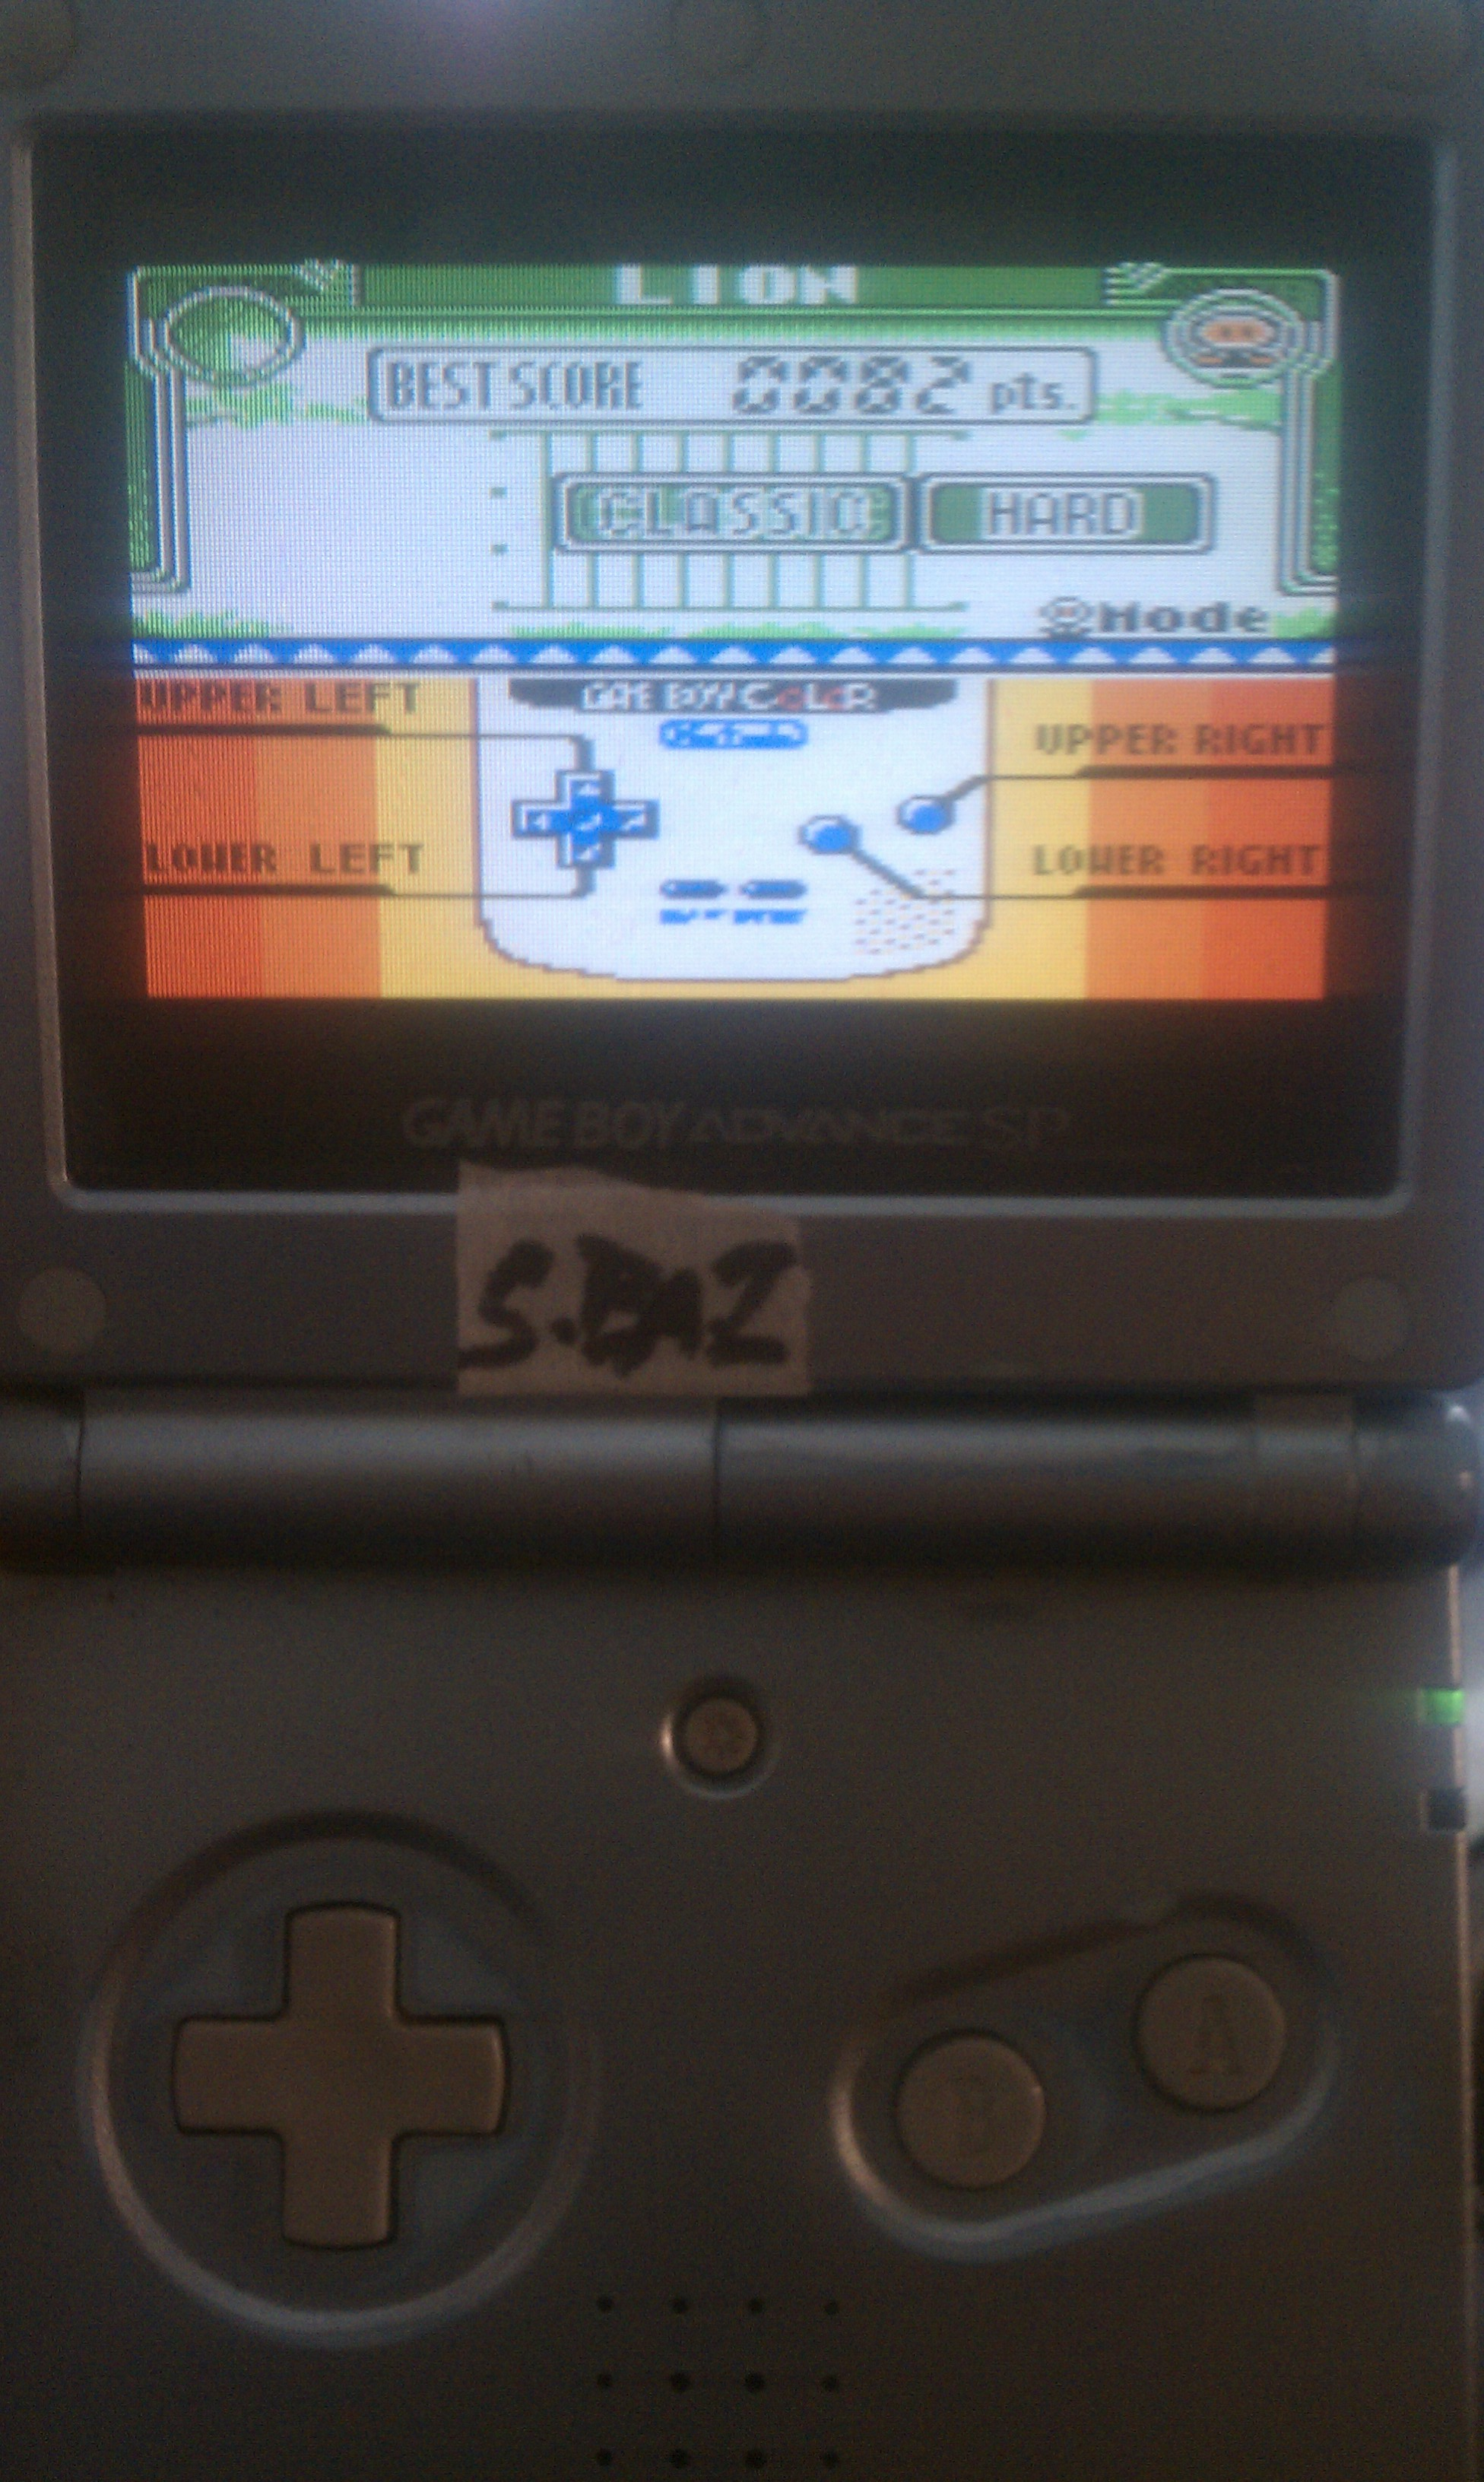 S.BAZ: Game & Watch Gallery 3: Lion [Classic: Hard] (Game Boy Color) 82 points on 2018-08-24 14:41:28